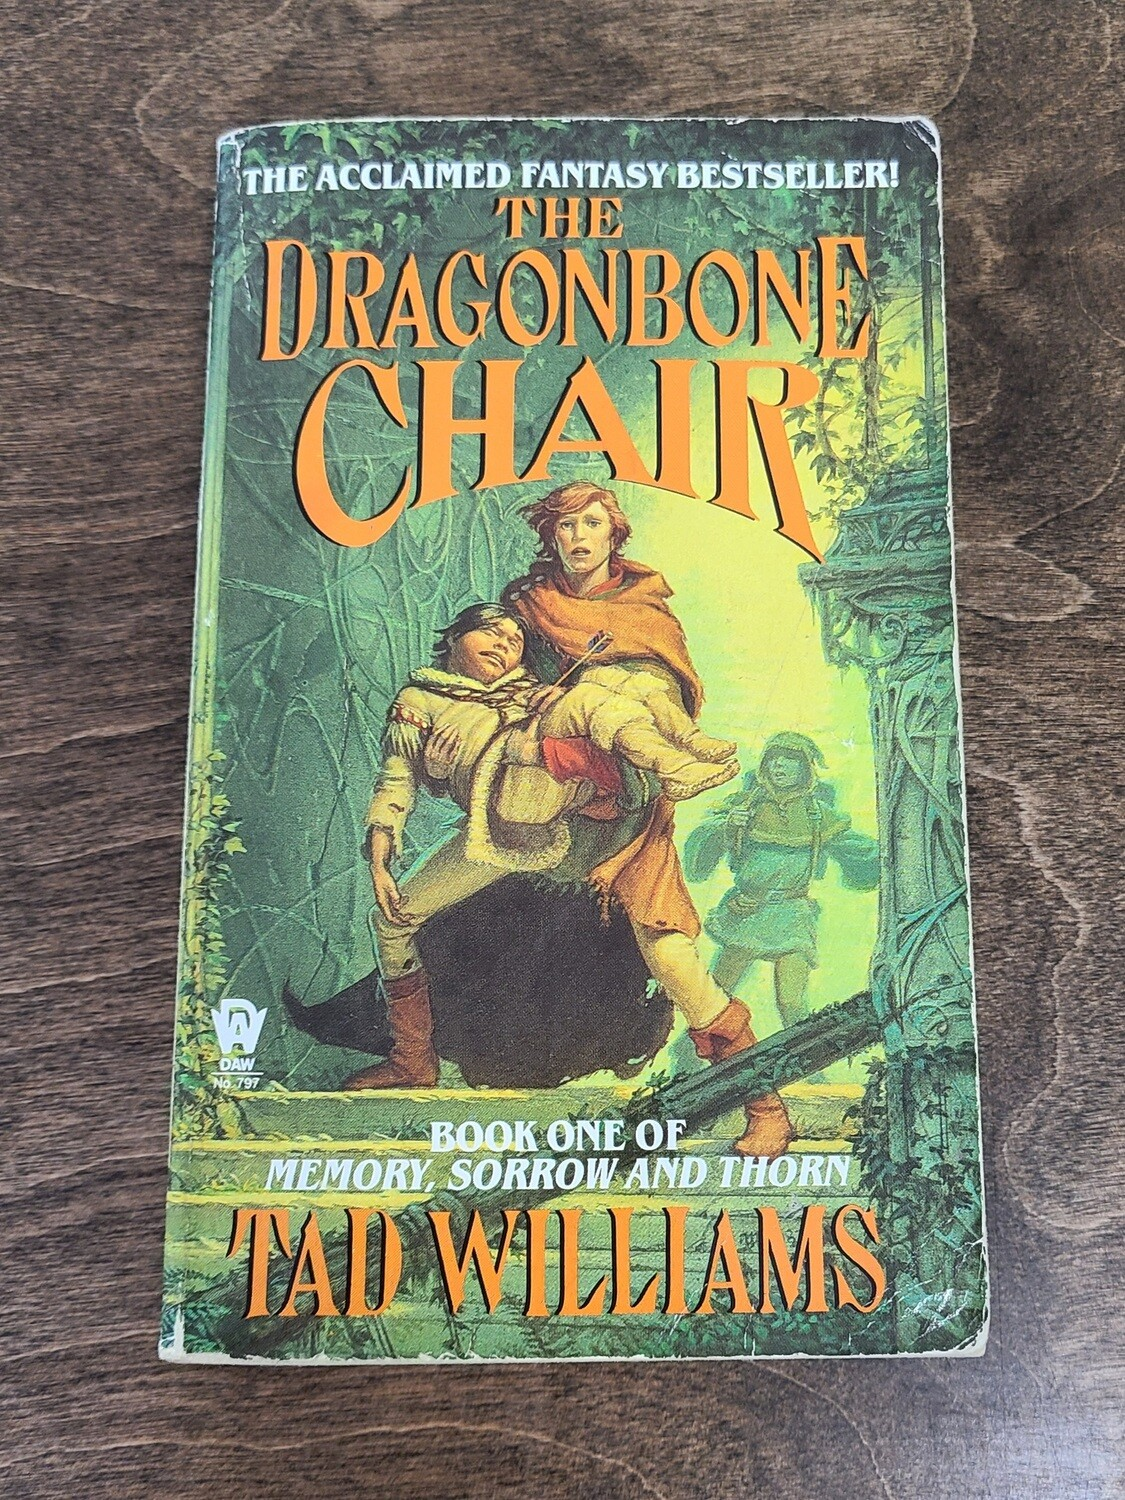 Memory, Sorrow, and Thorn: The Dragonbone Chair by Tad Williams